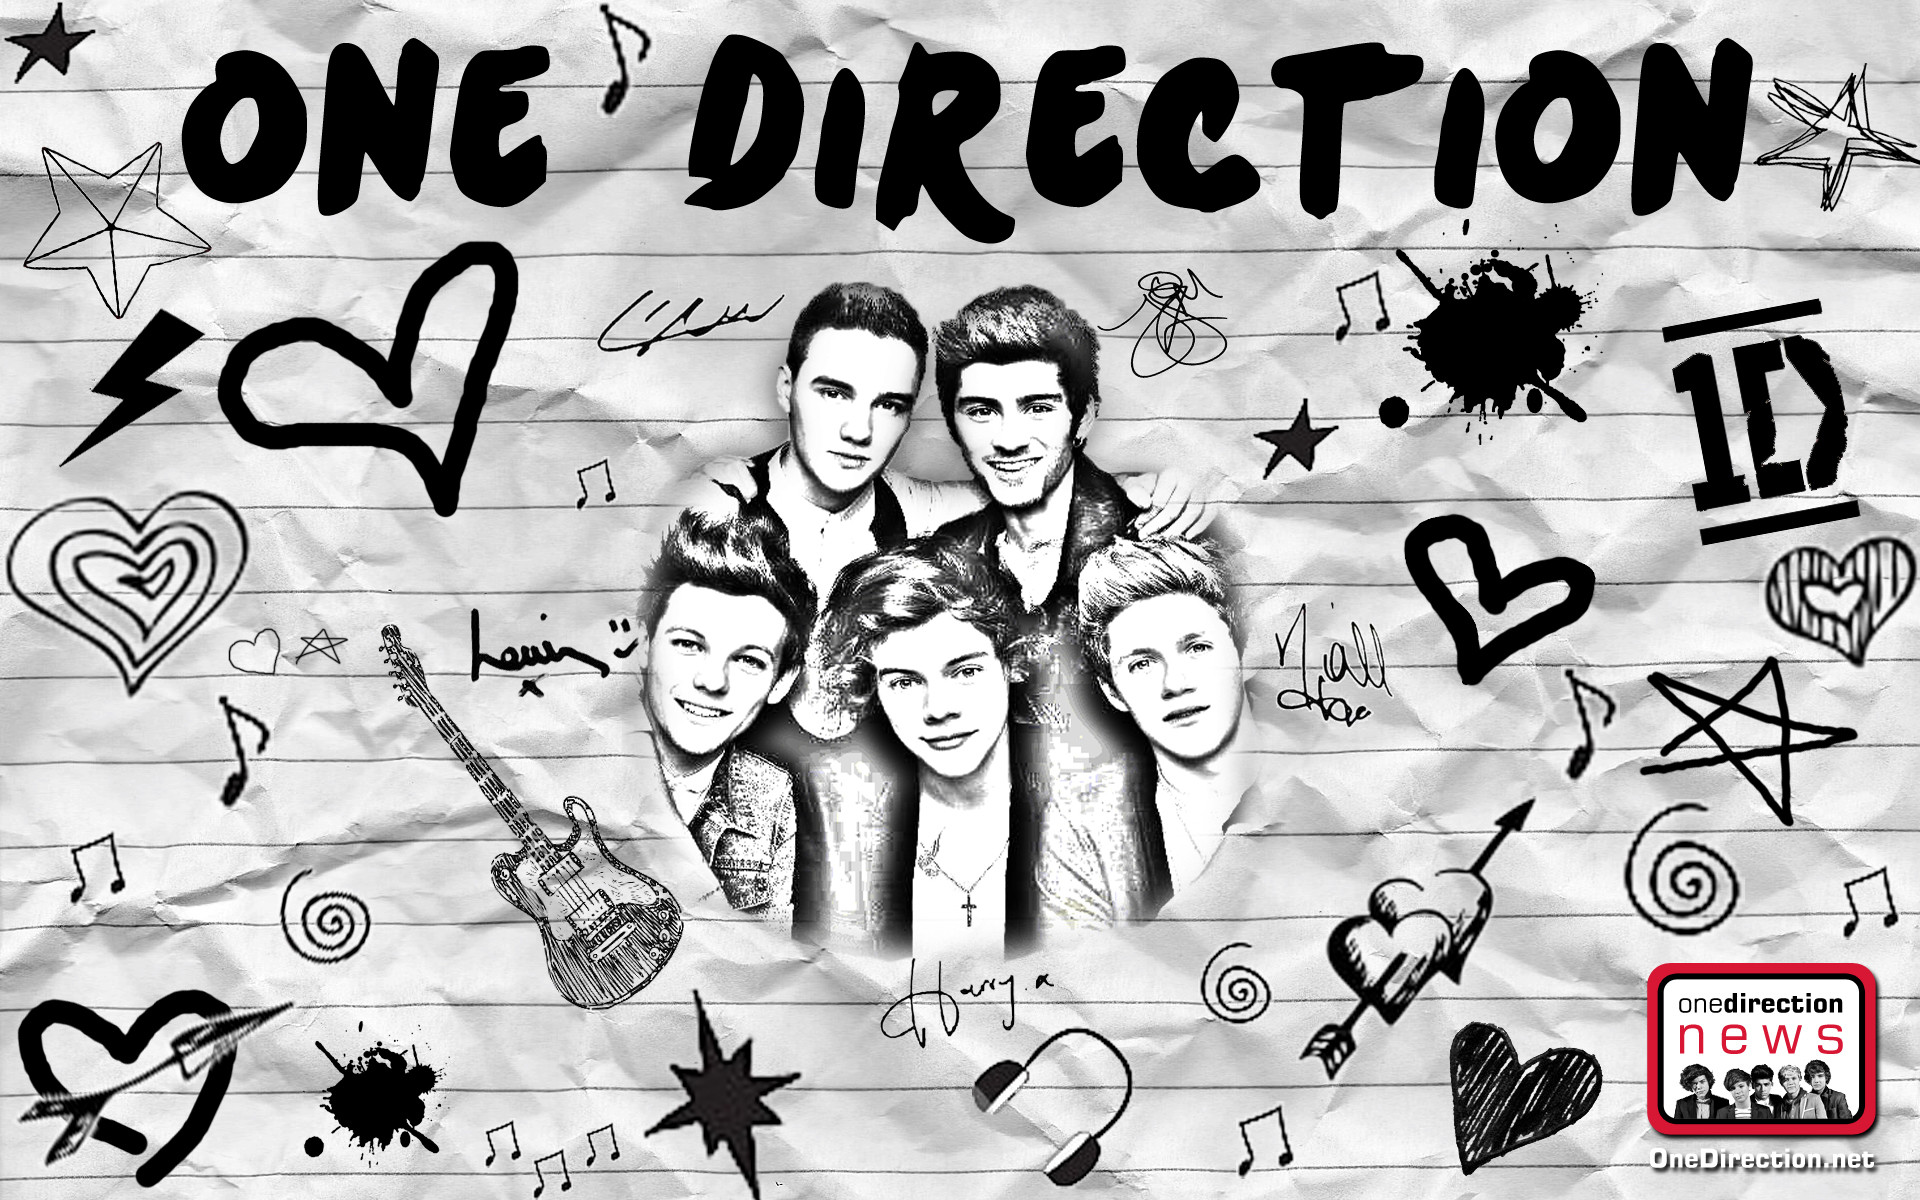 One Direction 2014 Wallpaper For Ipad Image Gallery, Picture .